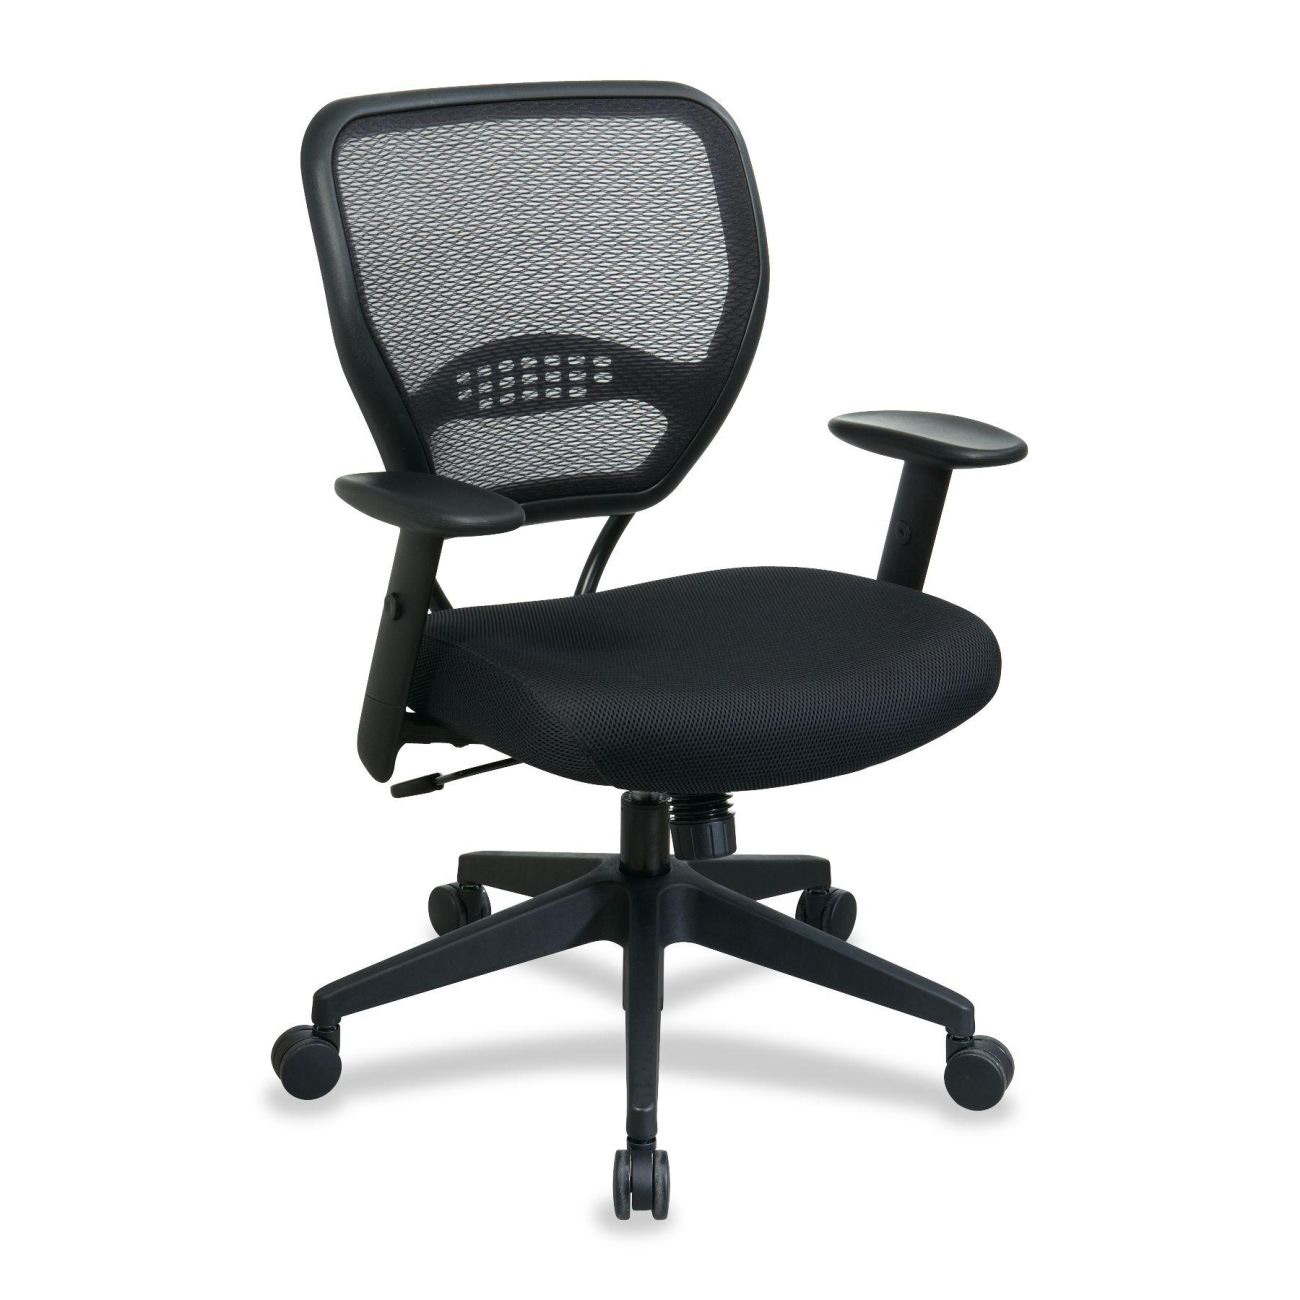 Used Office Furniture For Sale #072516-cub-os